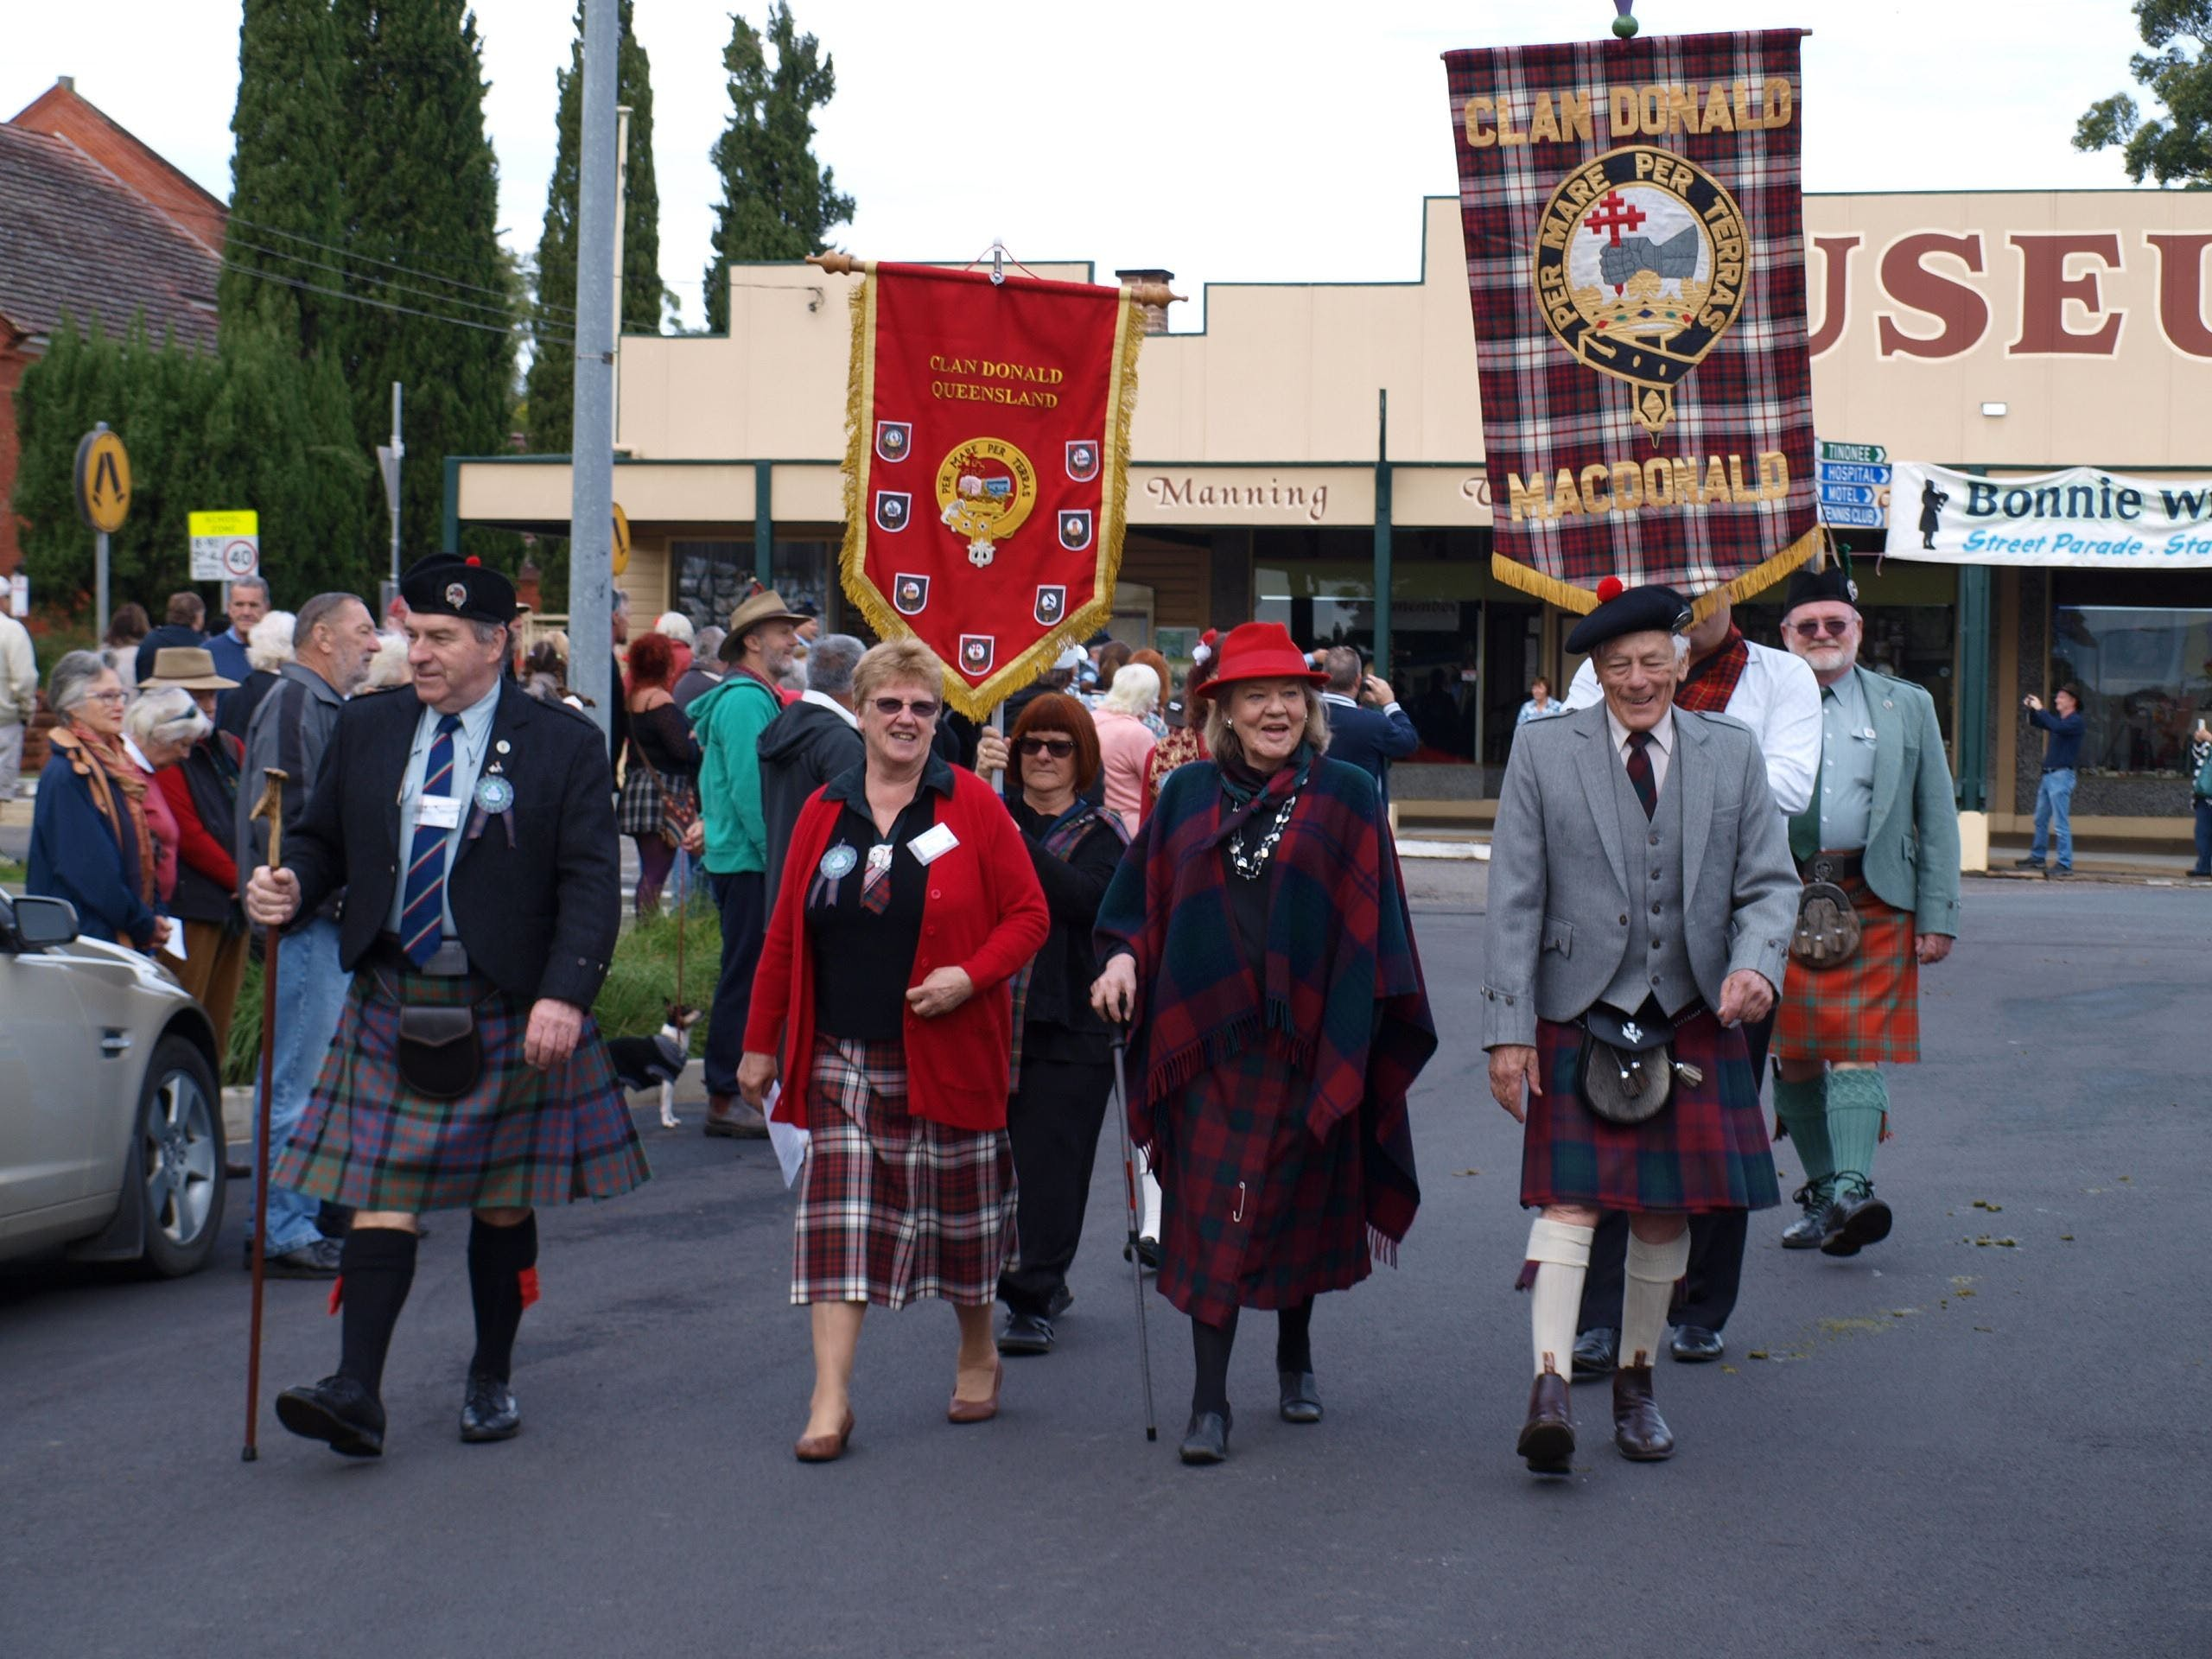 Bonnie Wingham Scottish Festival - Townsville Tourism